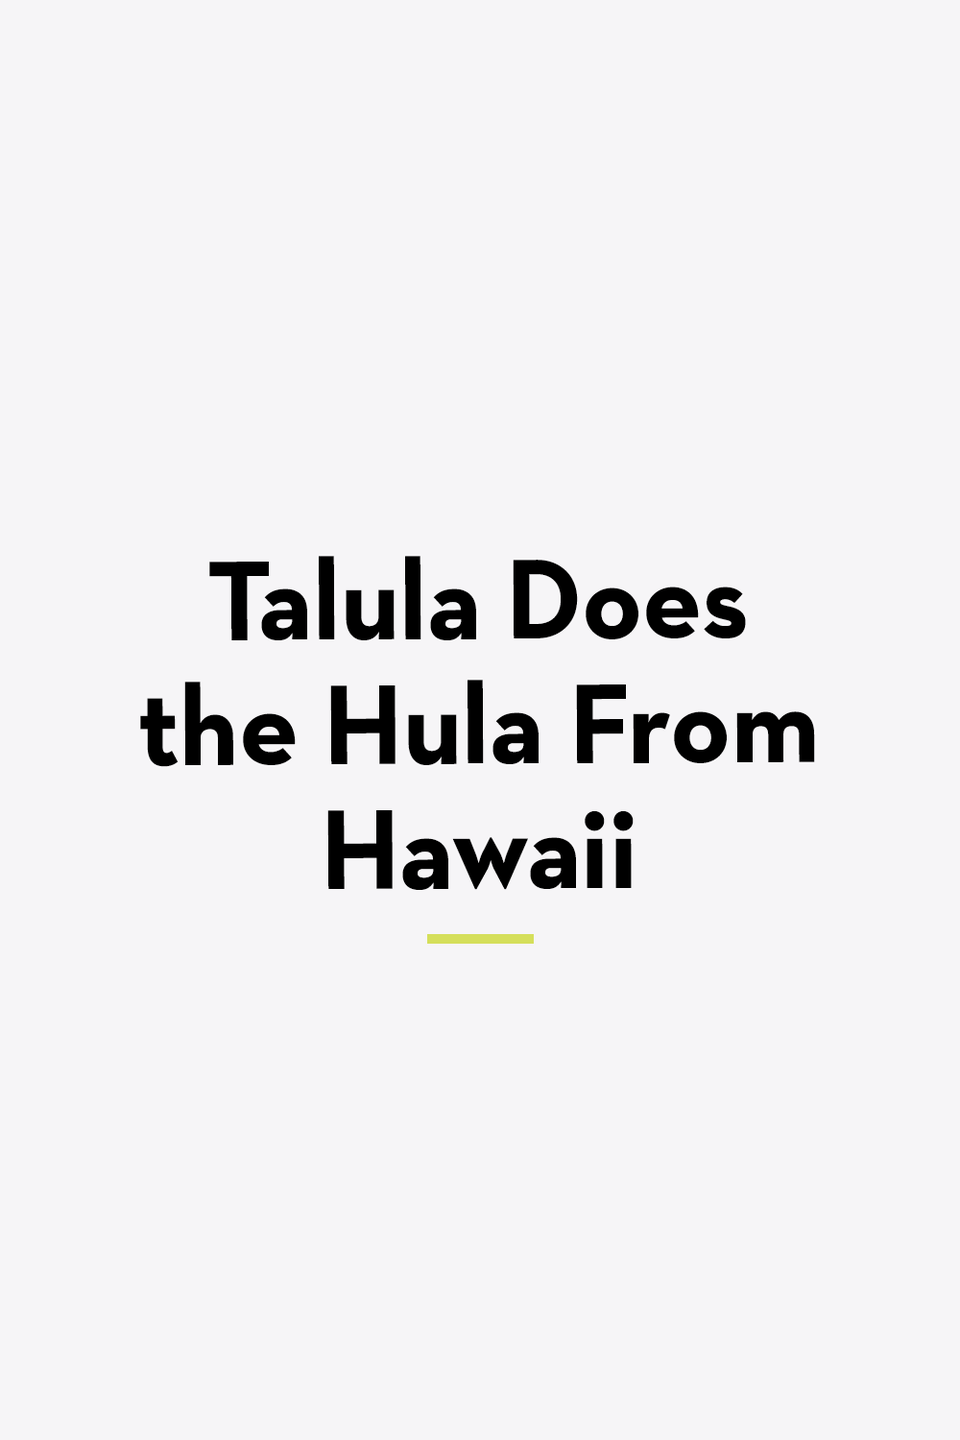 "<p>Yes, that whole thing was one name — in New Zealand, no less. When Talula Does the Hula From Hawaii turned 9 and complained about her name in a family court hearing, <a href=""https://www.theguardian.com/lifeandstyle/2008/jul/24/familyandrelationships.newzealand"" rel=""nofollow noopener"" target=""_blank"" data-ylk=""slk:her parents actually lost custody"" class=""link rapid-noclick-resp"">her parents actually lost custody</a> of her because the judge was ""so profoundly concerned about the very poor judgment."" After the guardianship arrangement was altered, the girl was allowed to legally change her name.</p>"